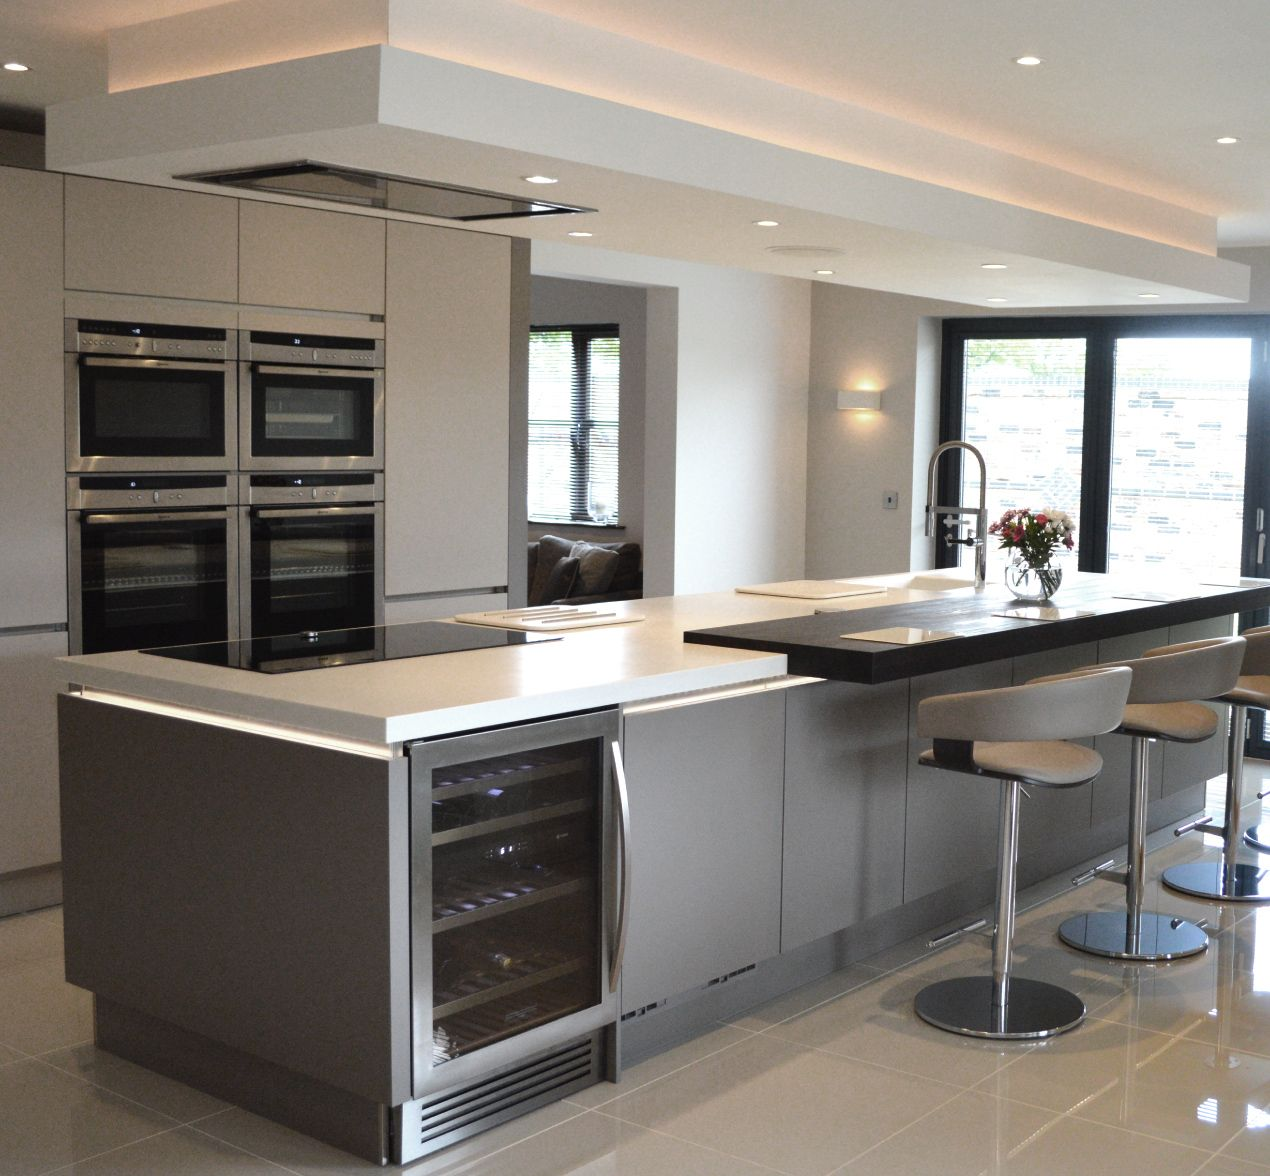 Why choose us kitchen designers for 30 years kitchen design centre Kitchen design centre stanway